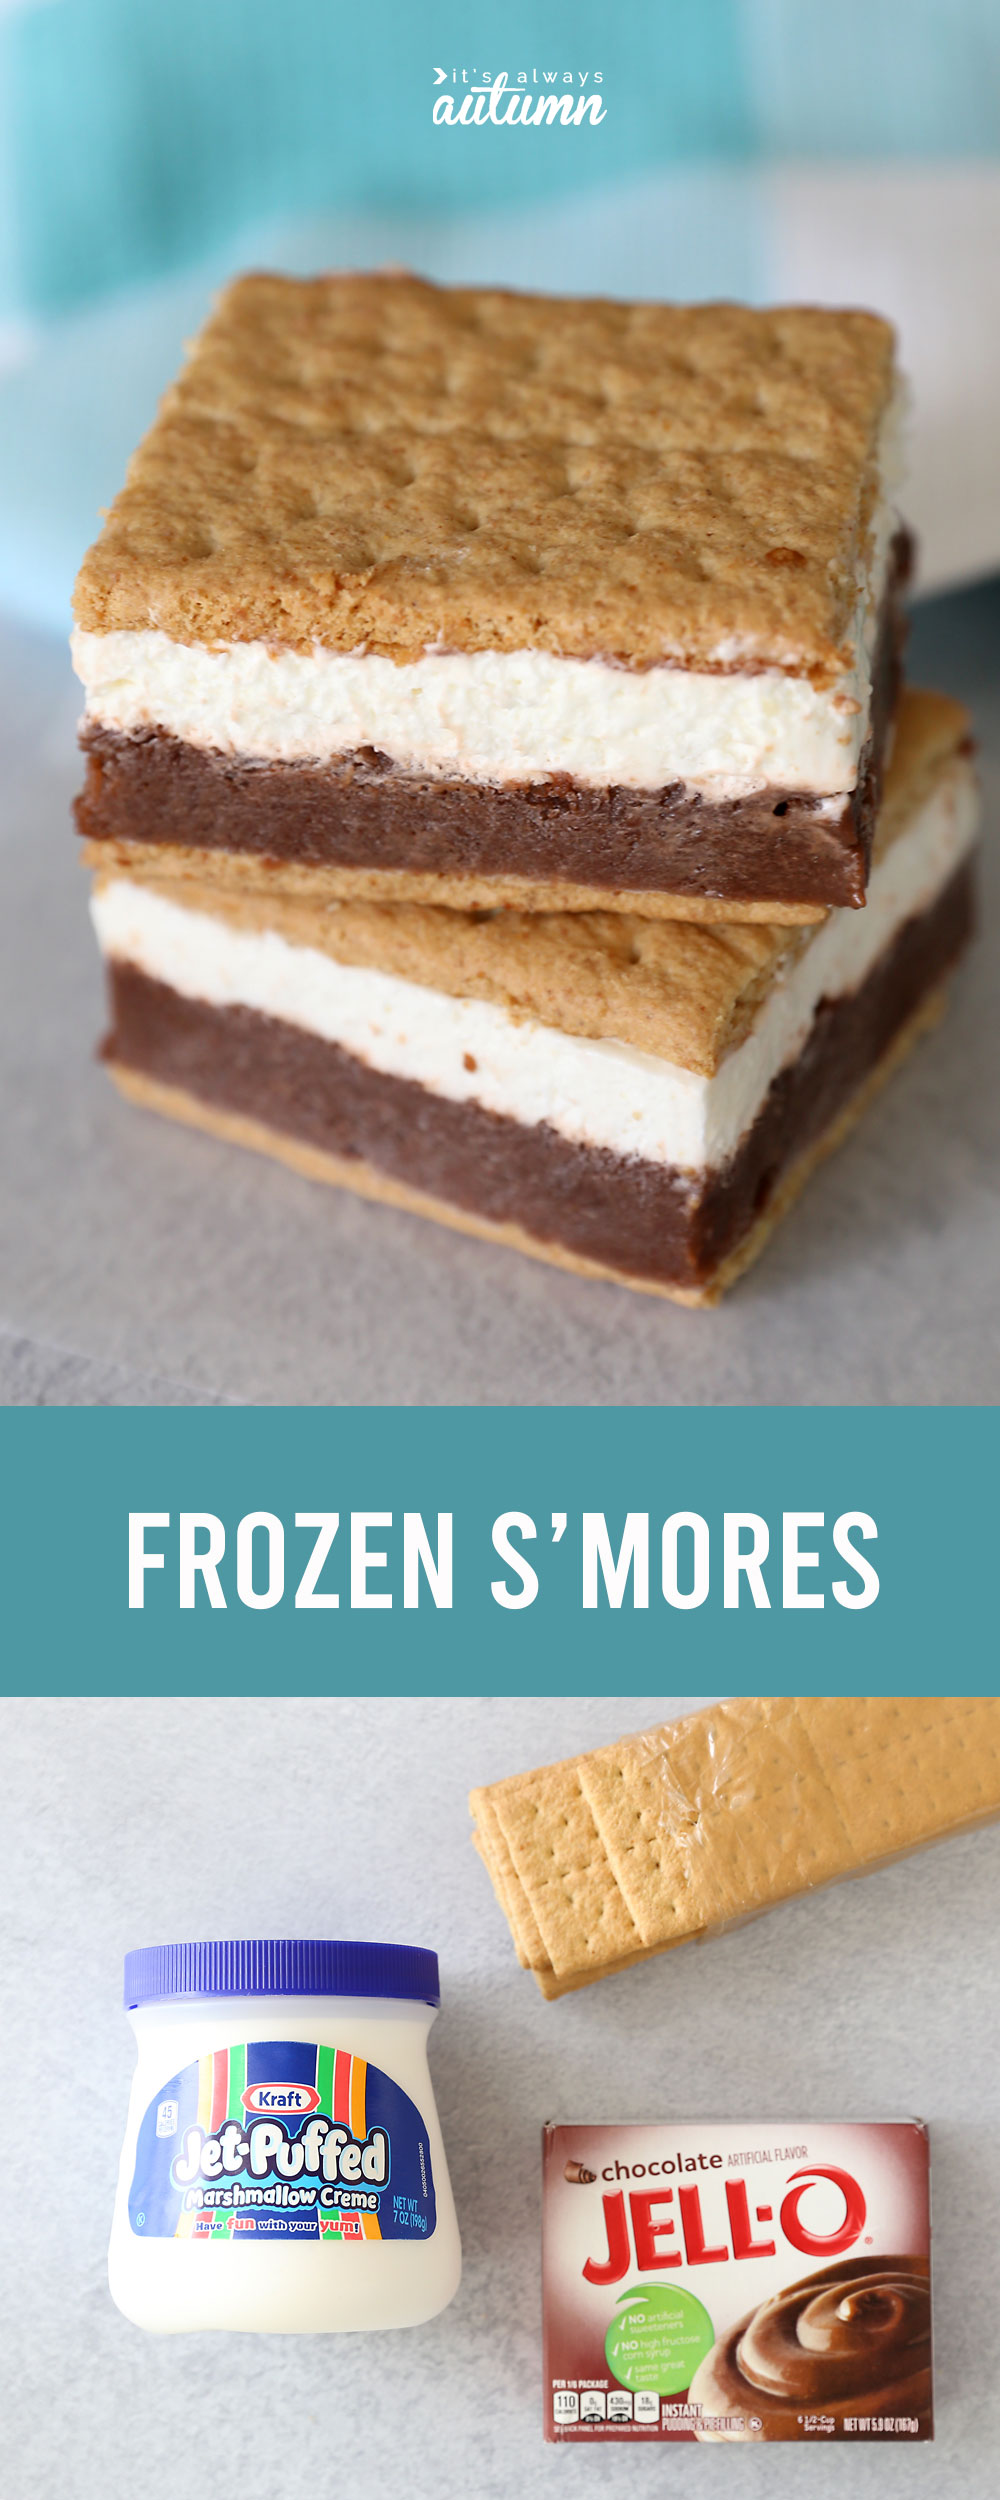 Frozen s'mores are a great way to enjoy all the flavor of s'mores in a cold treat! Keep them in your freezer so you can enjoy them anytime.